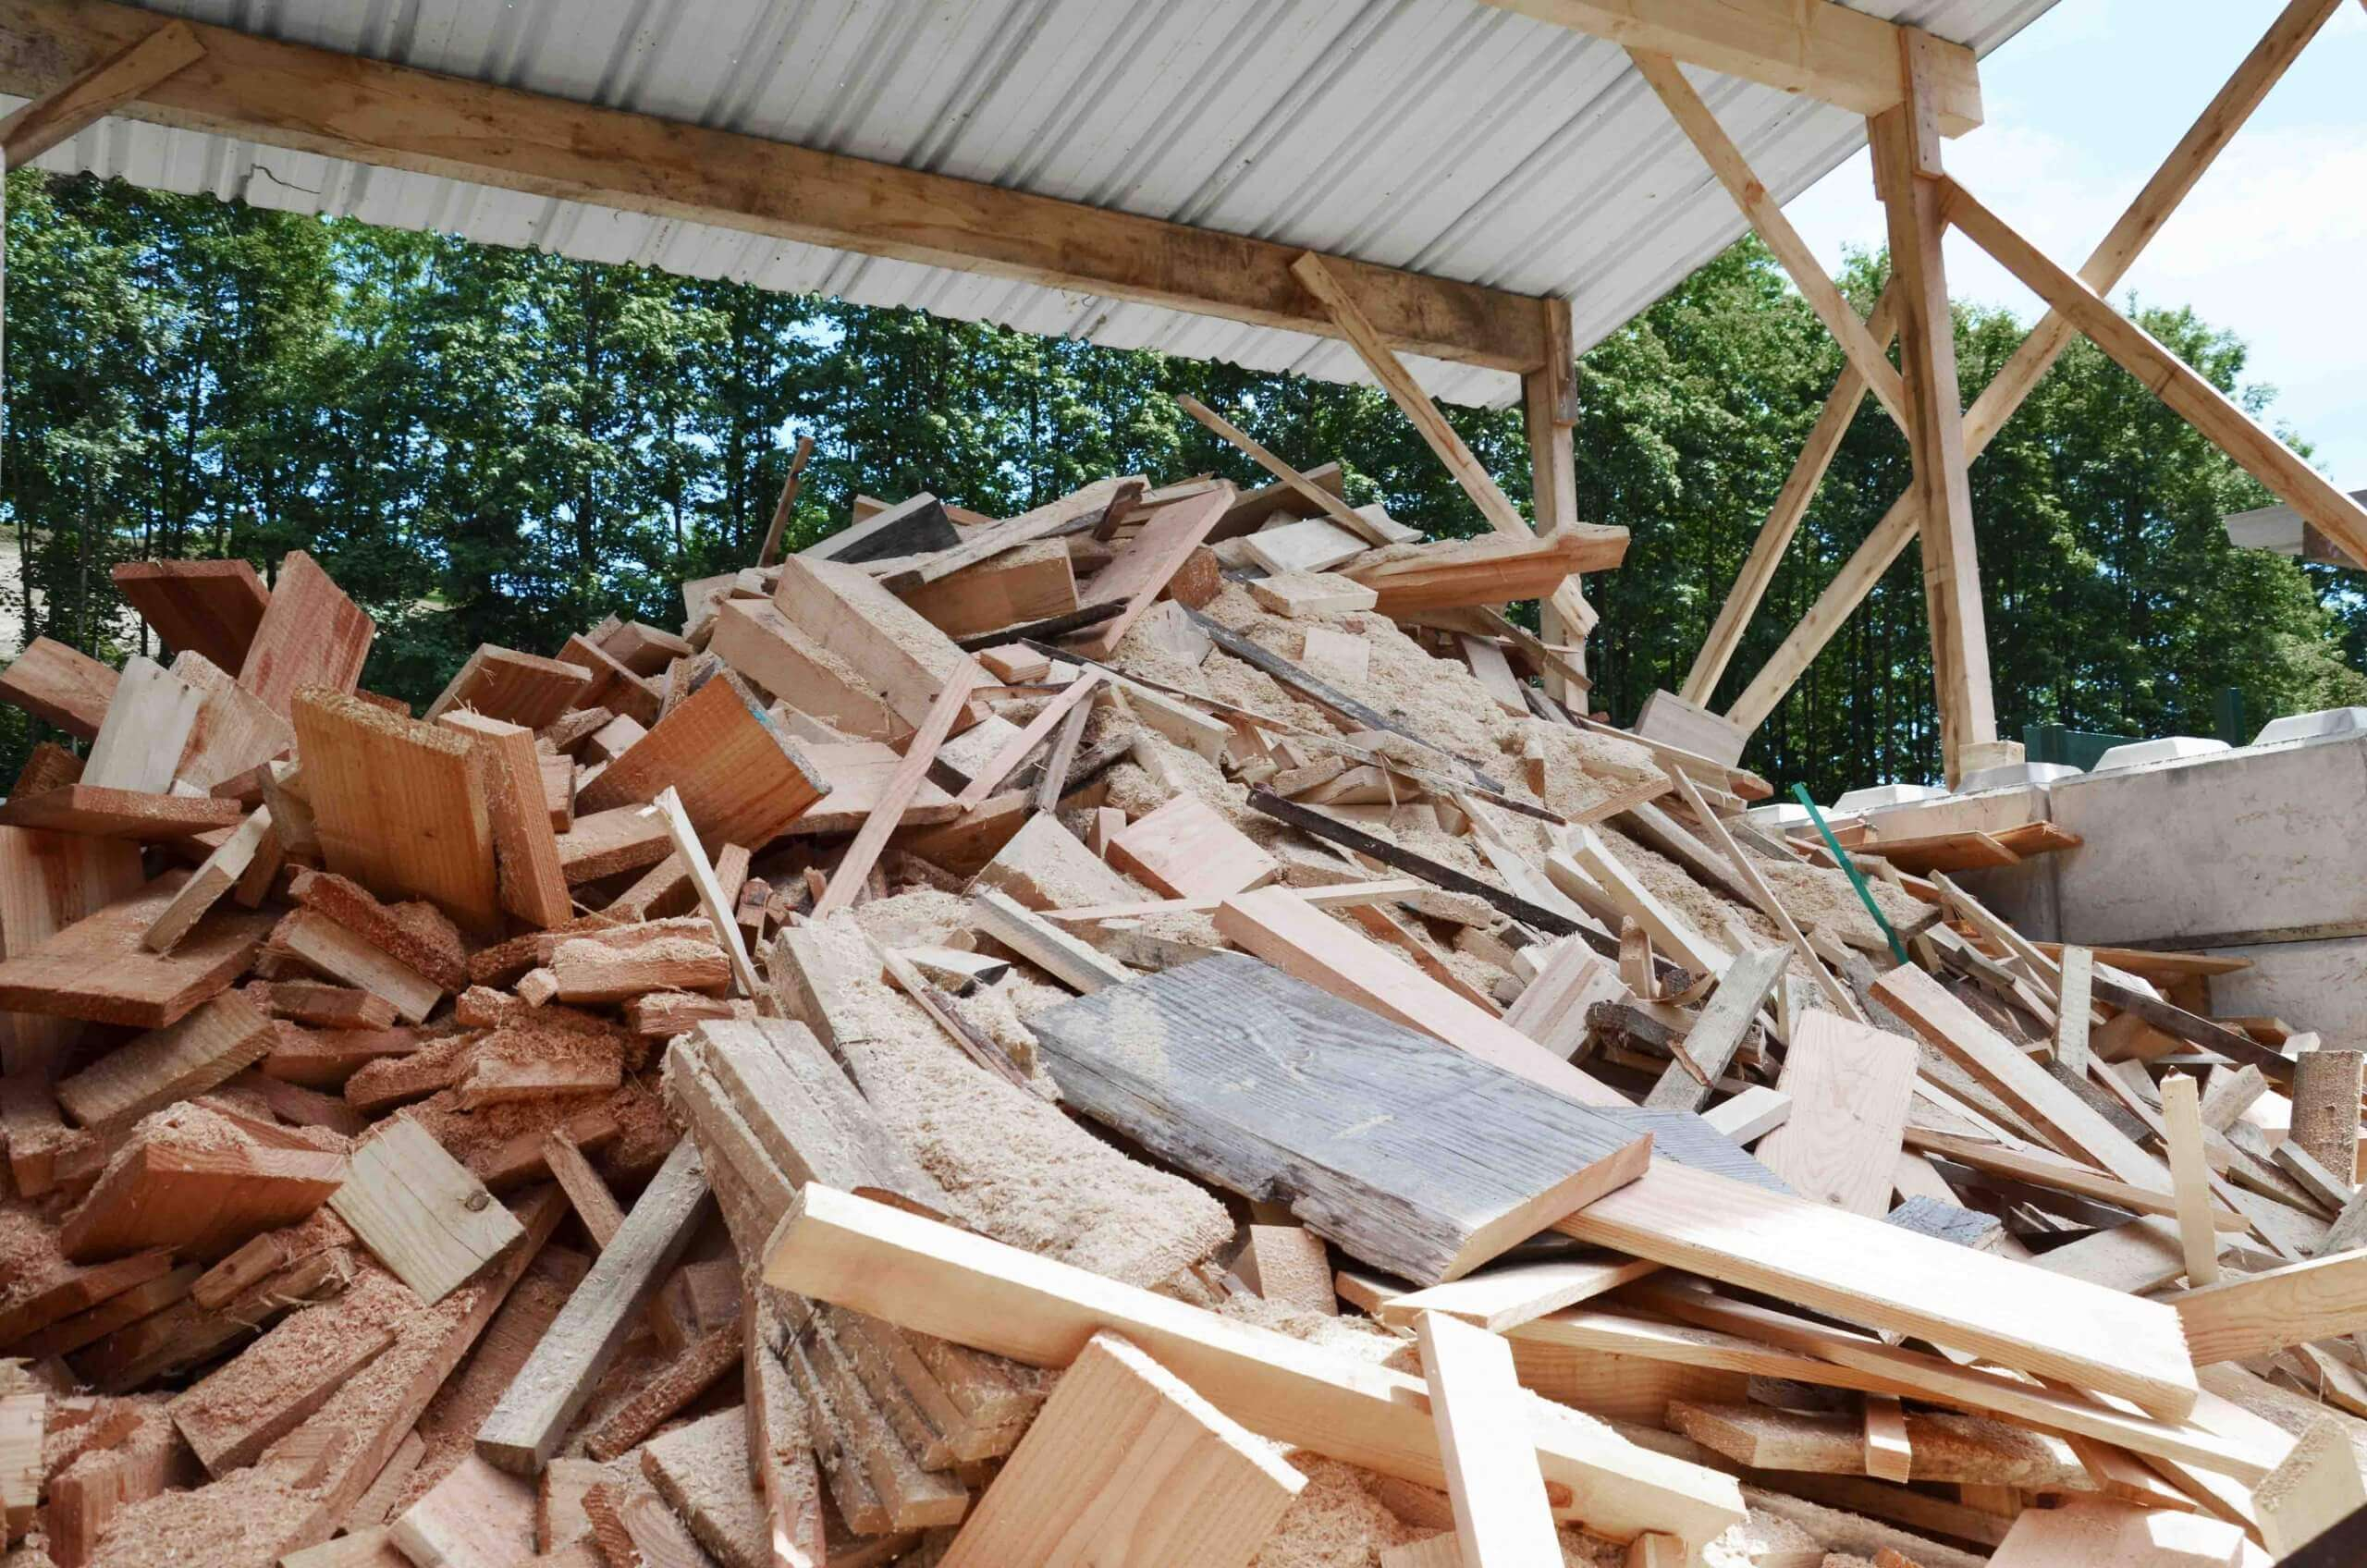 A pile of demolition wood before the shredding process